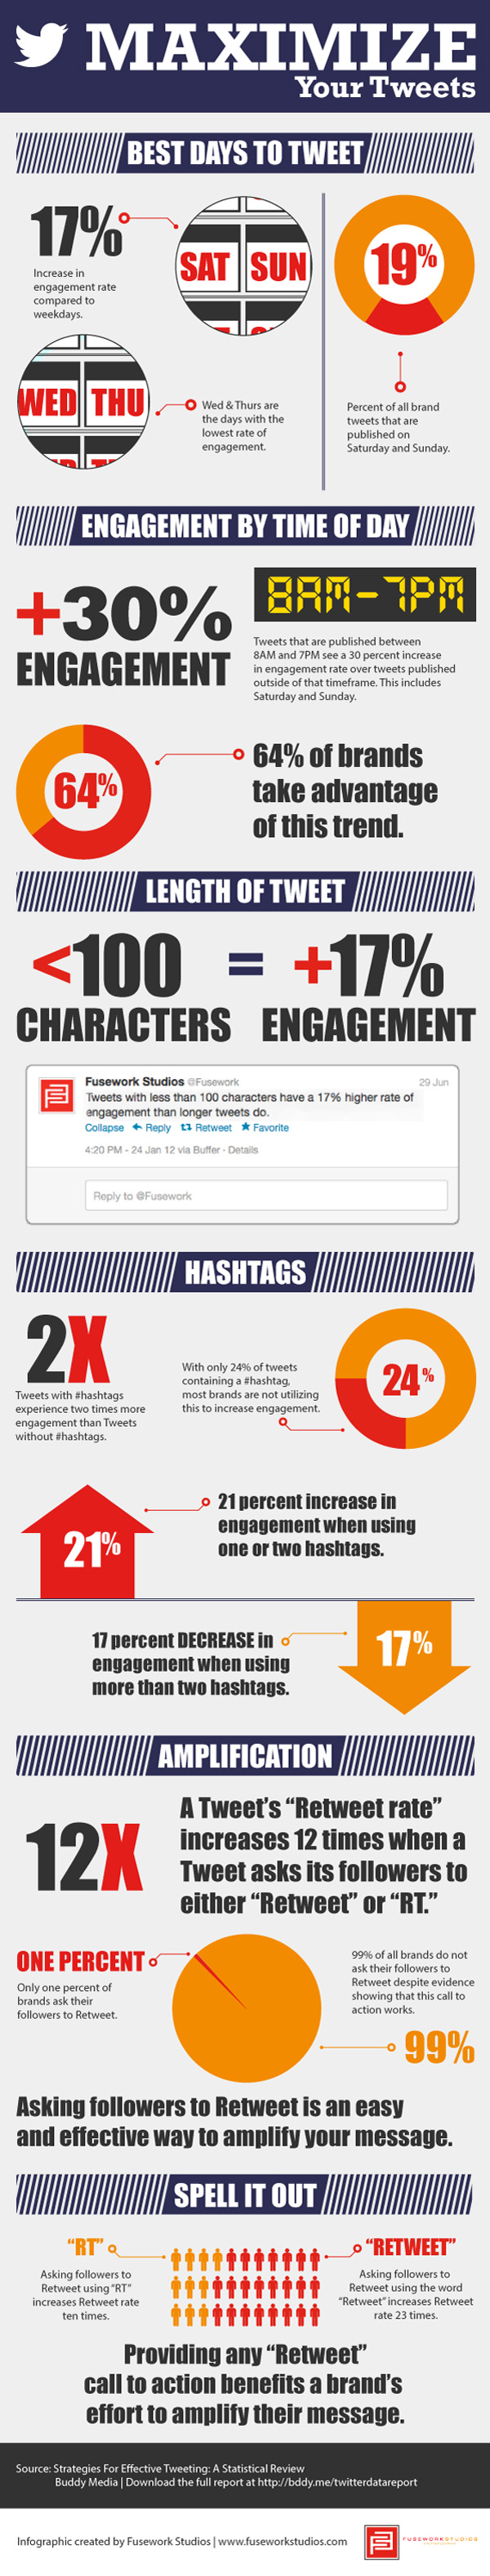 How to optimize your tweets to increase engagement